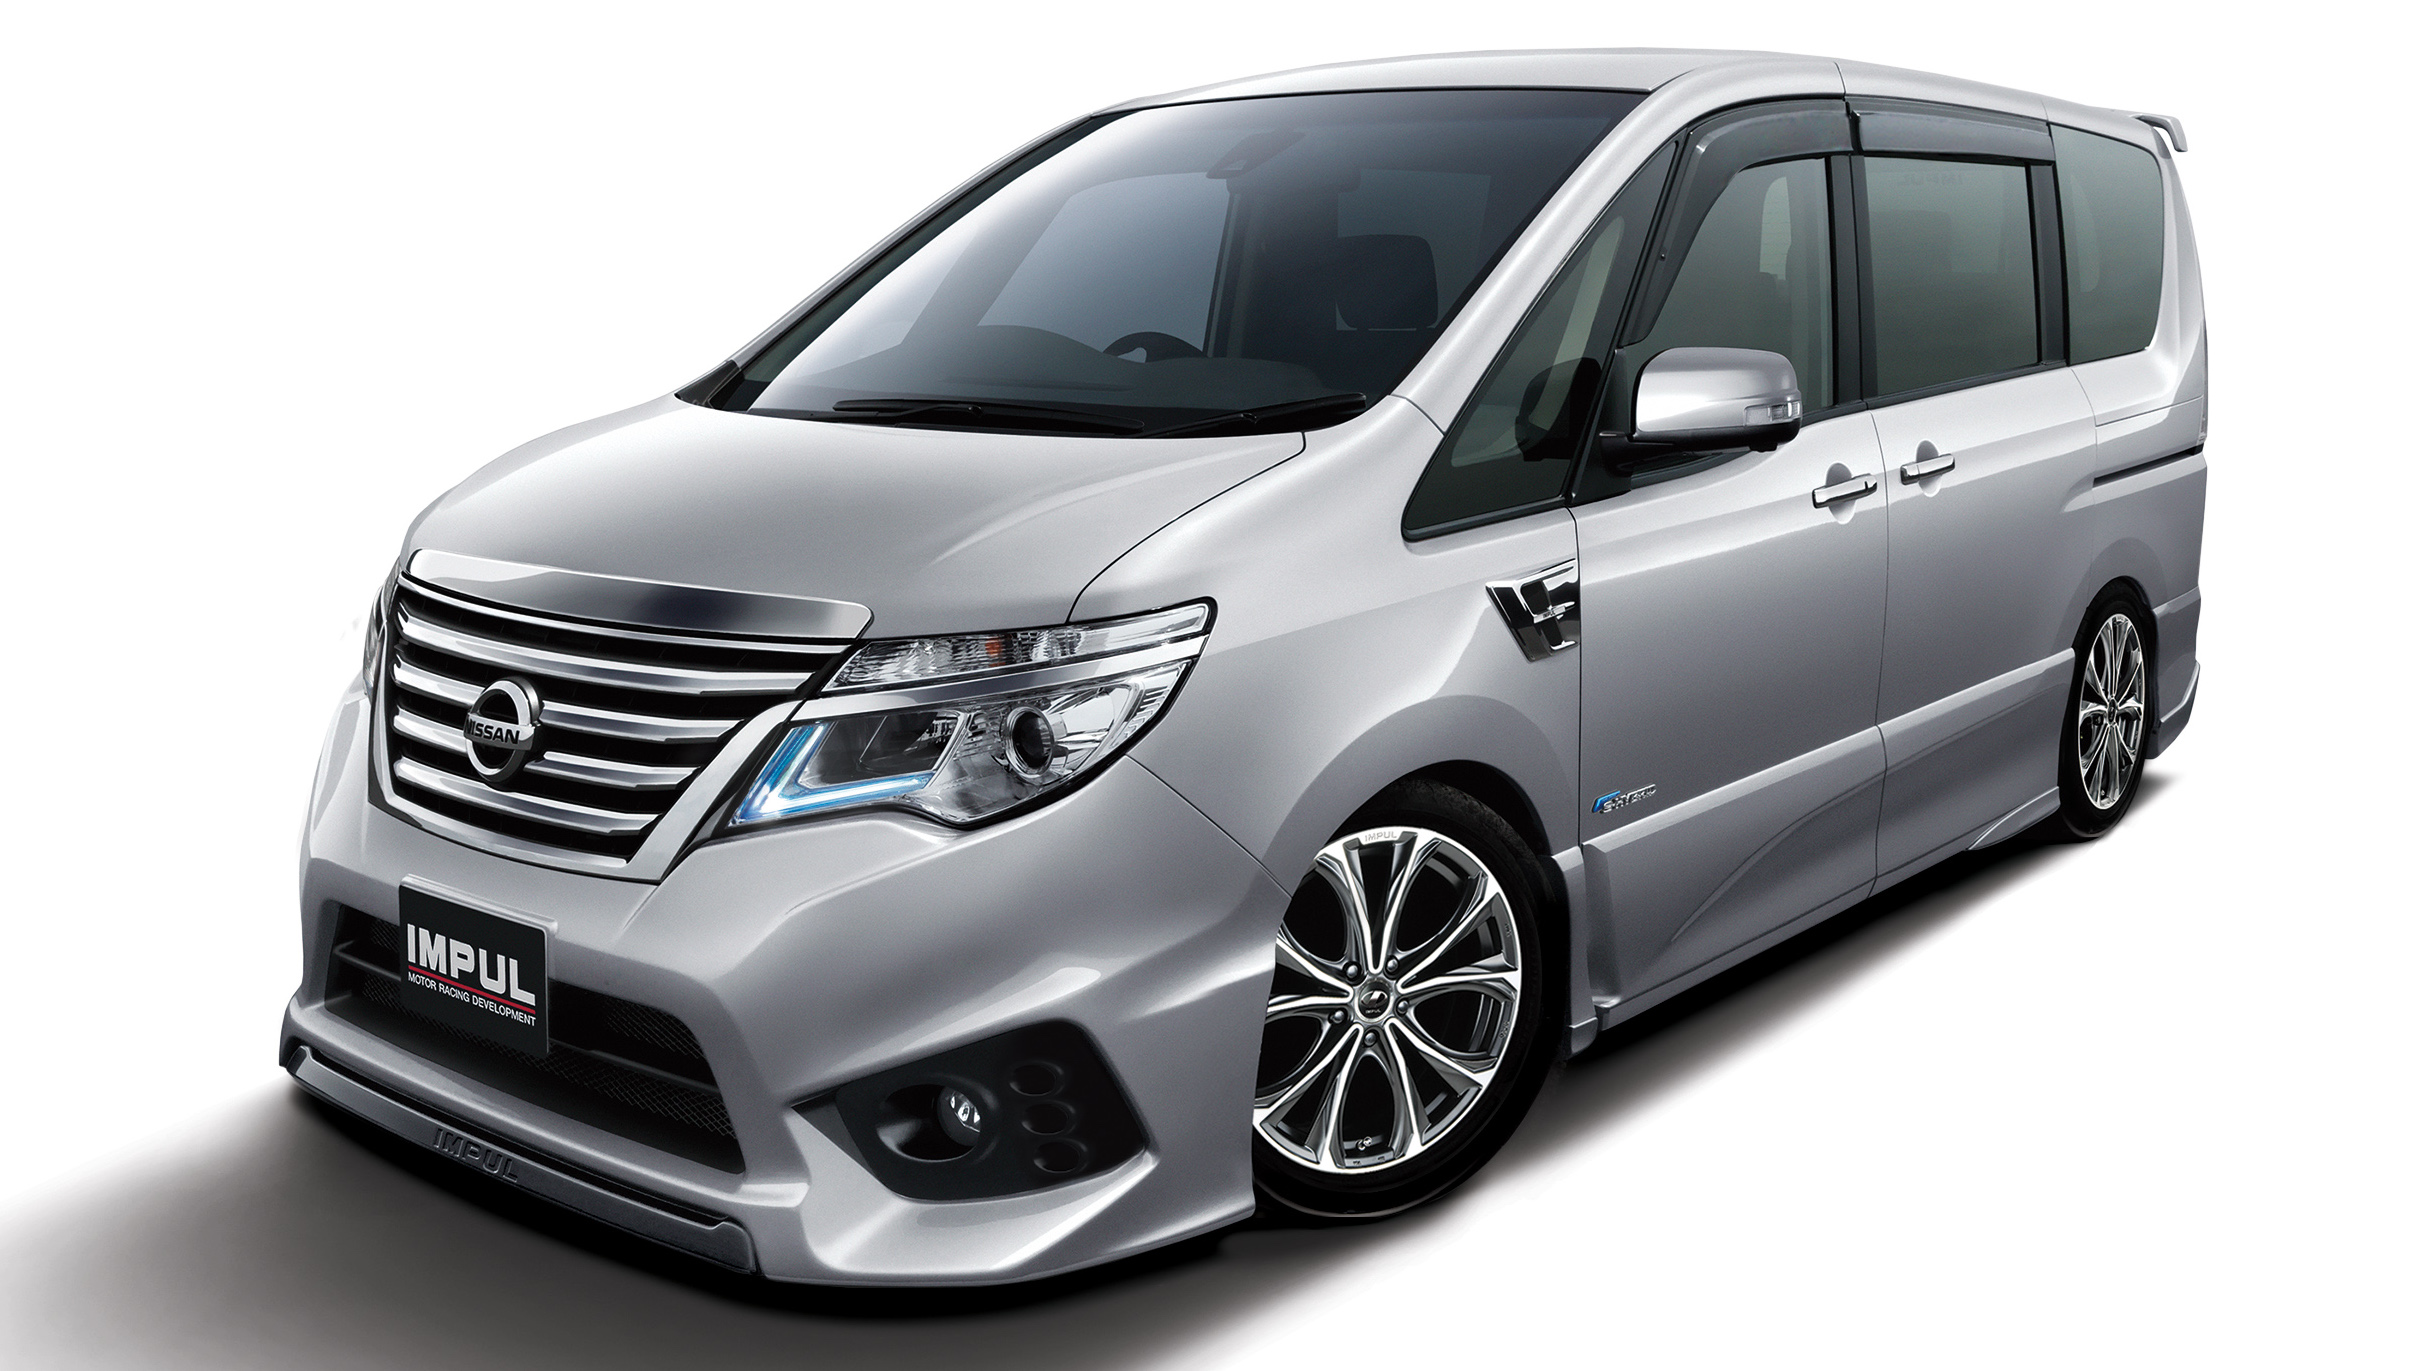 Nissan serena s hybrid tuned by impul launched in malaysia two variants rm146k and rm156k